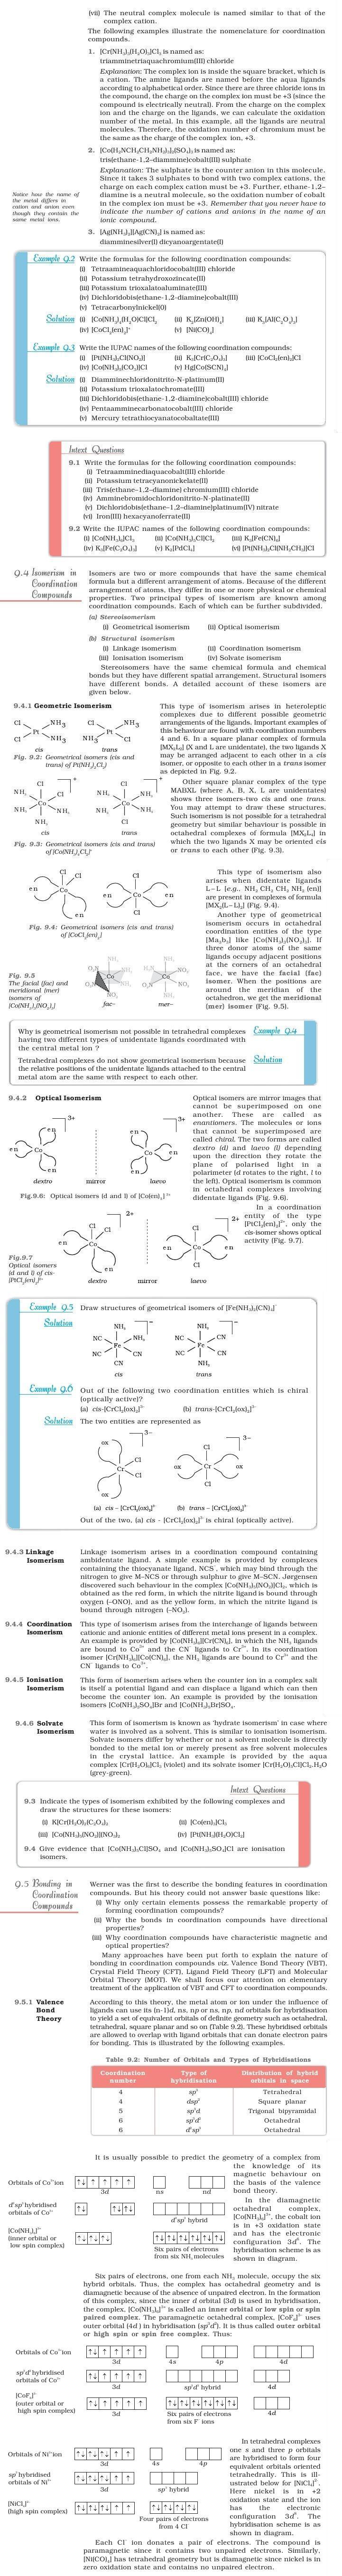 NCERT Class XII Chemistry Chapter 9 - Coordination Compounds